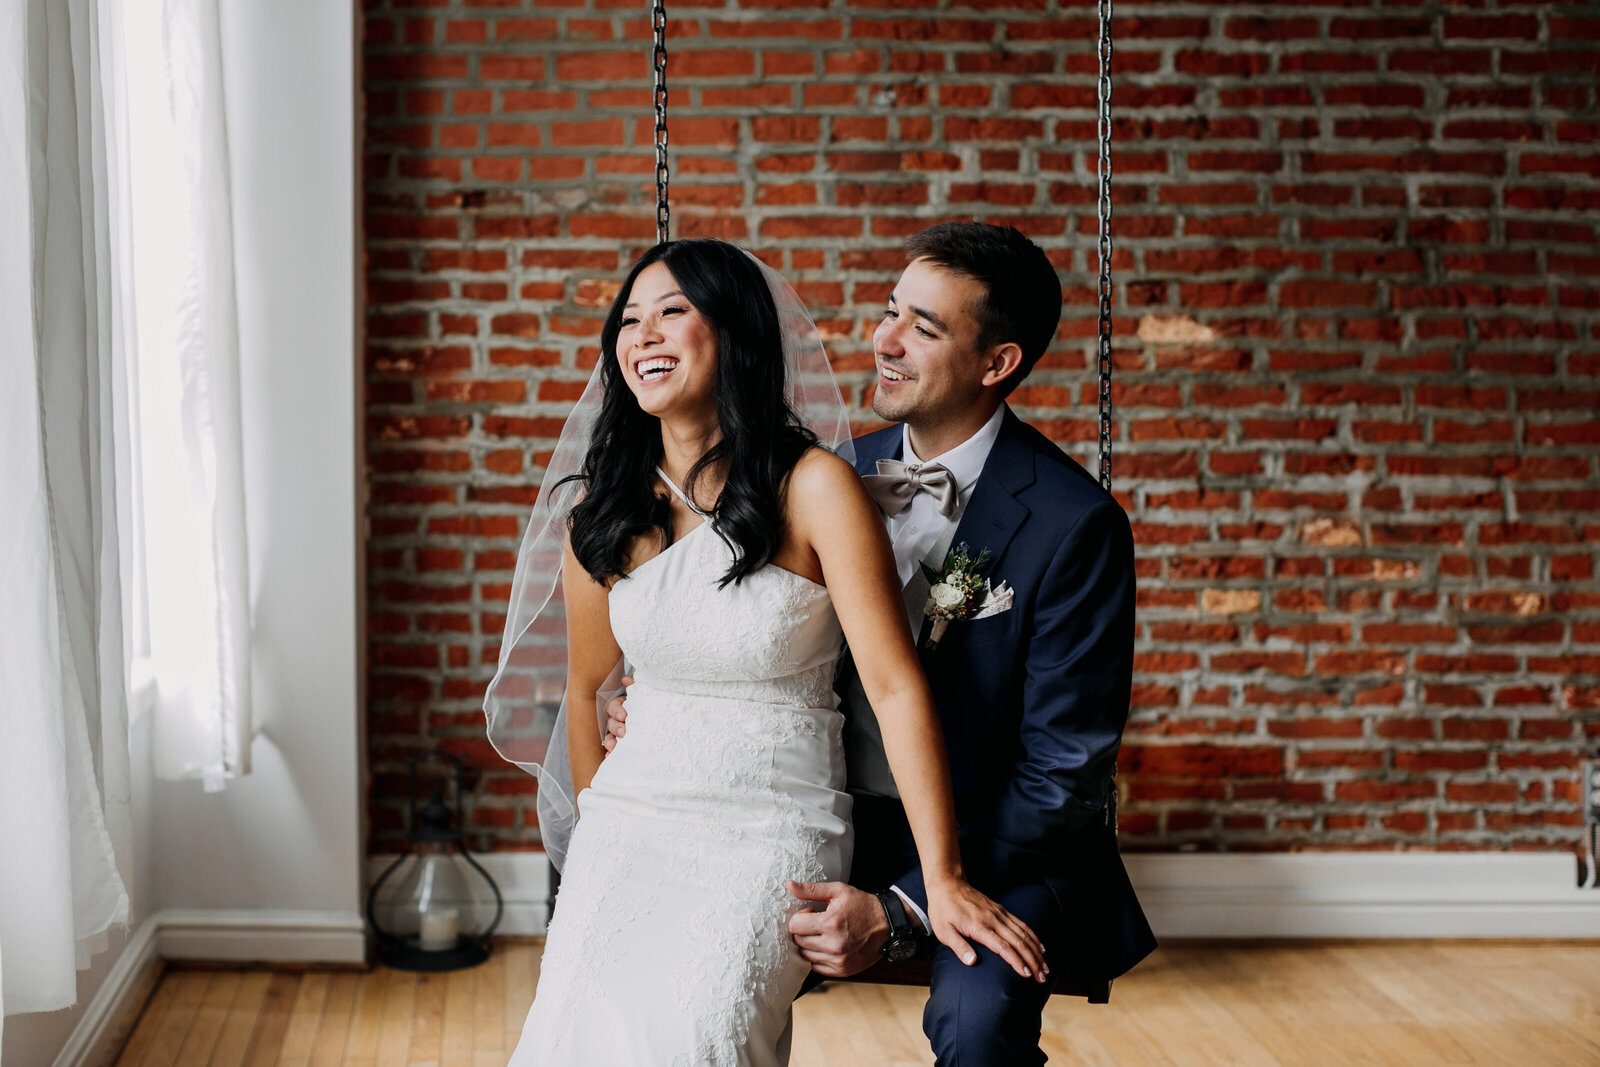 bride and groom with vintage brick wall